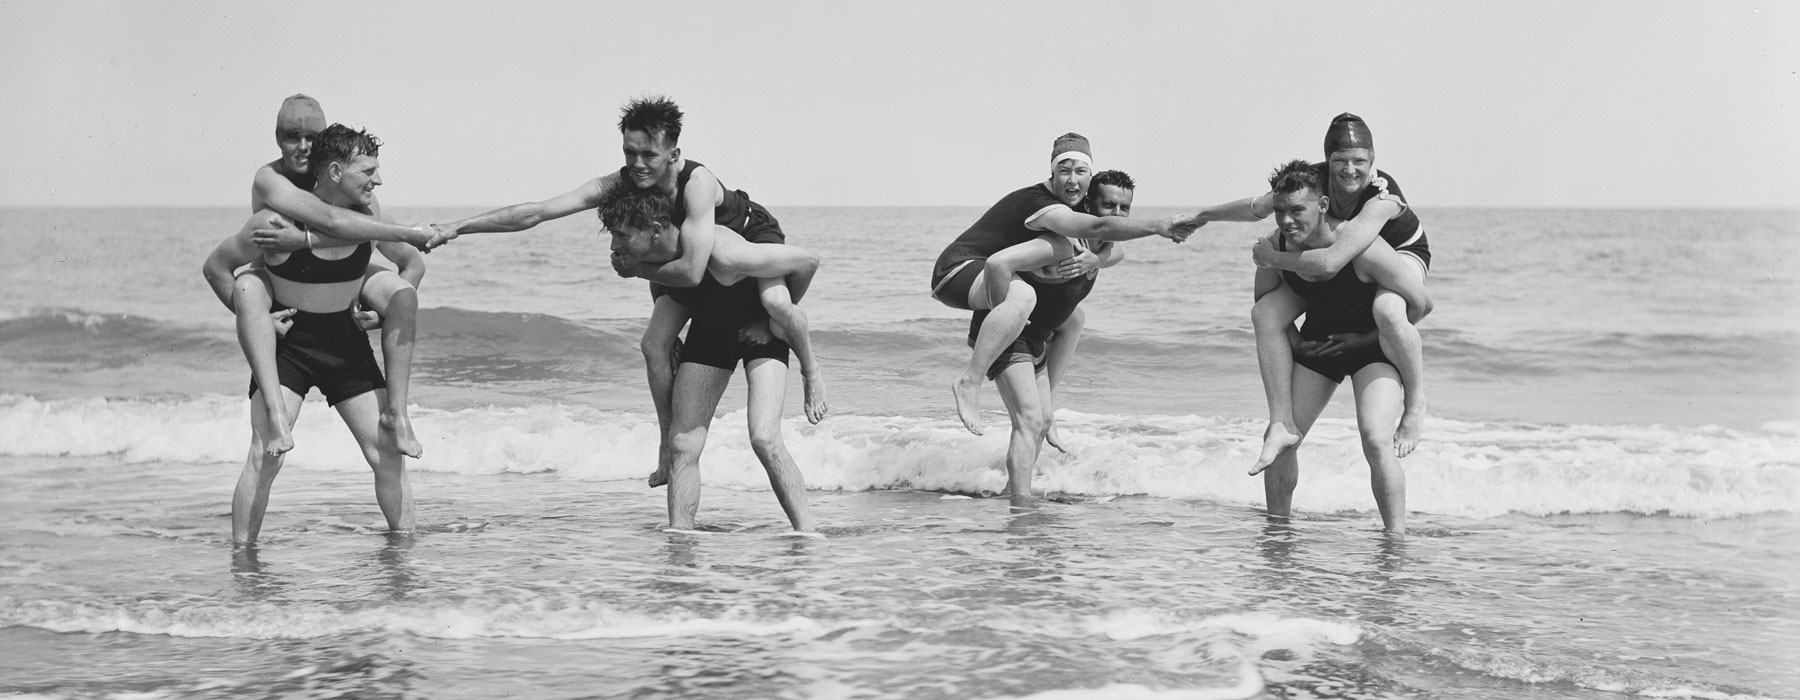 People playing in the sea